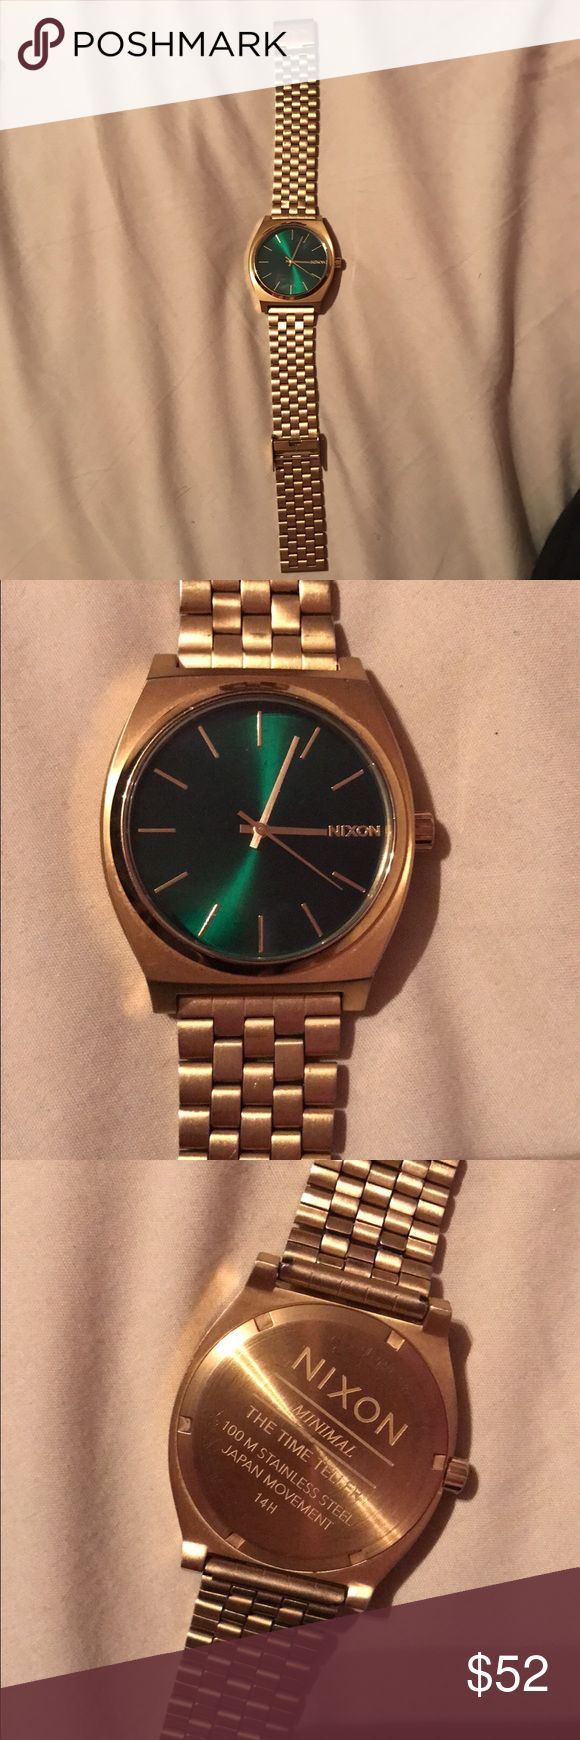 Men's Nixon Watch Great condition. Doesn't work but i think it might just need new batteries. Still a great watch to wear for looks, regardless. Make offers :) Nixon Accessories Watches